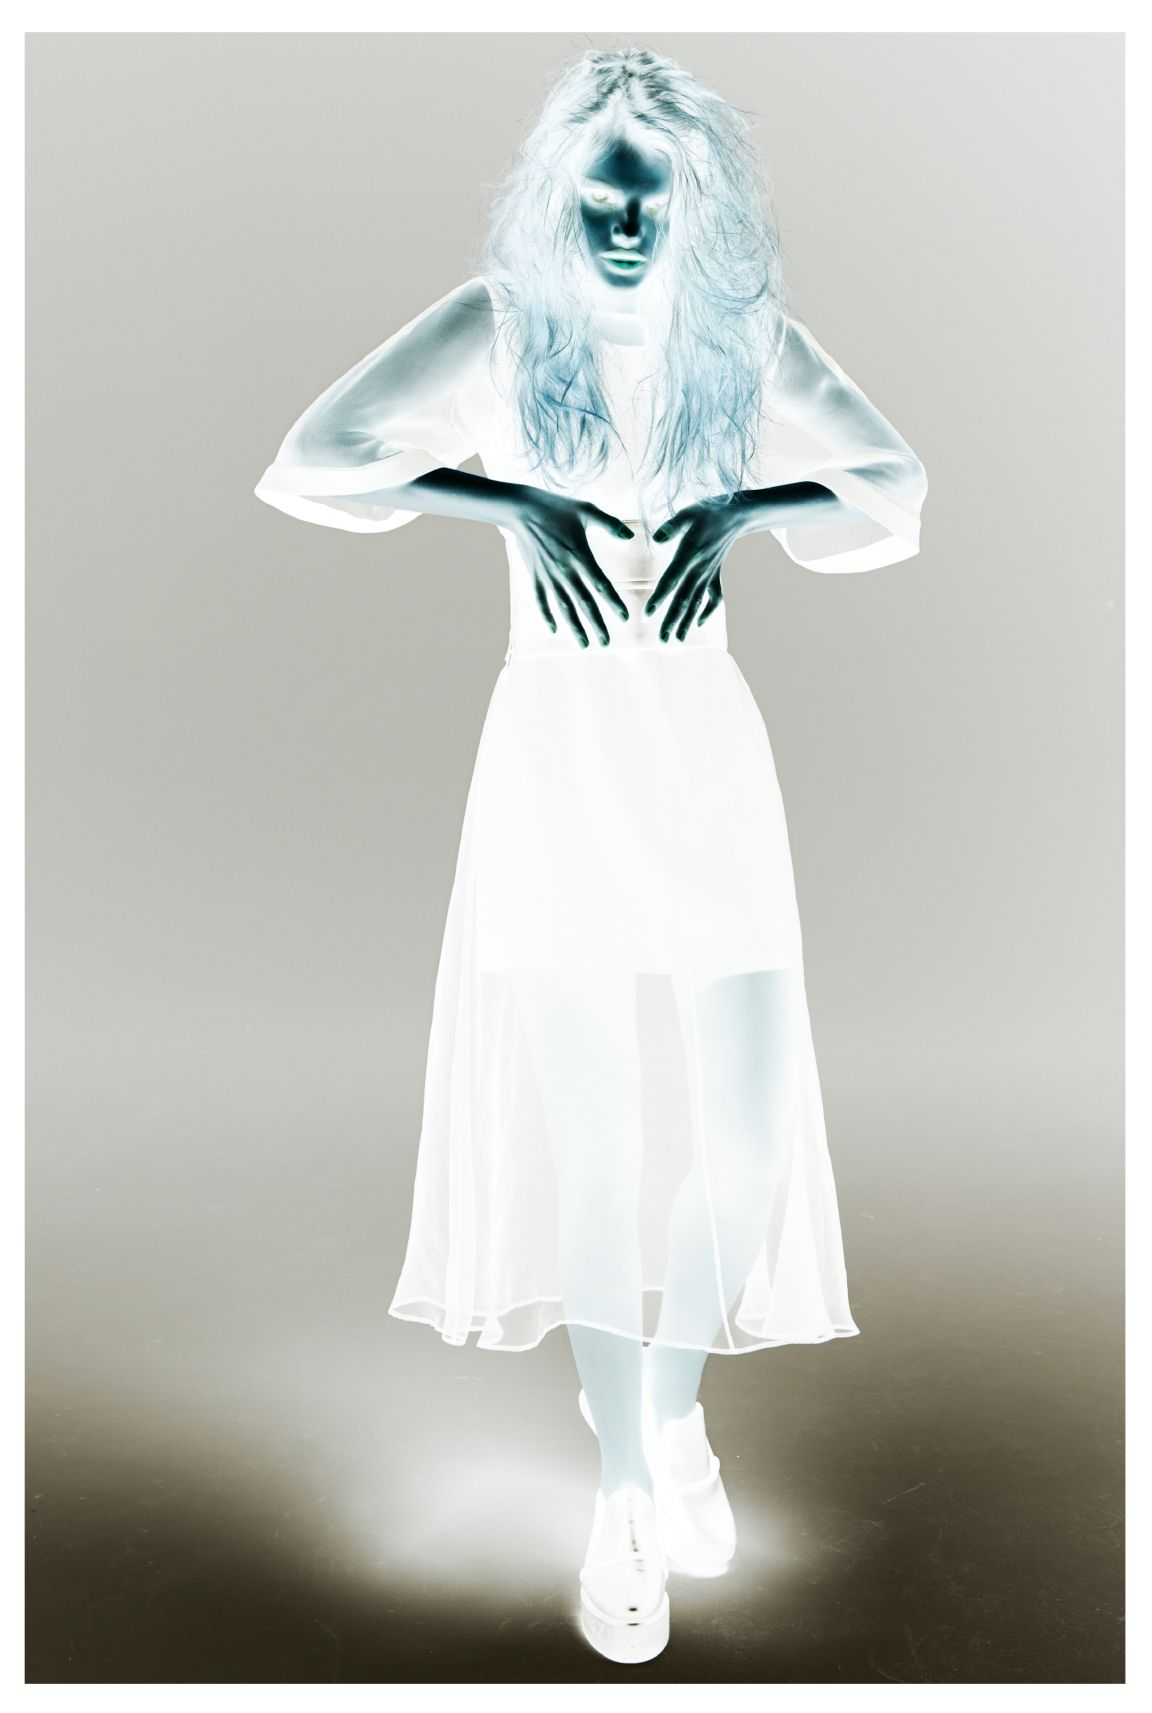 Invert - Photographed by Lesha Lich